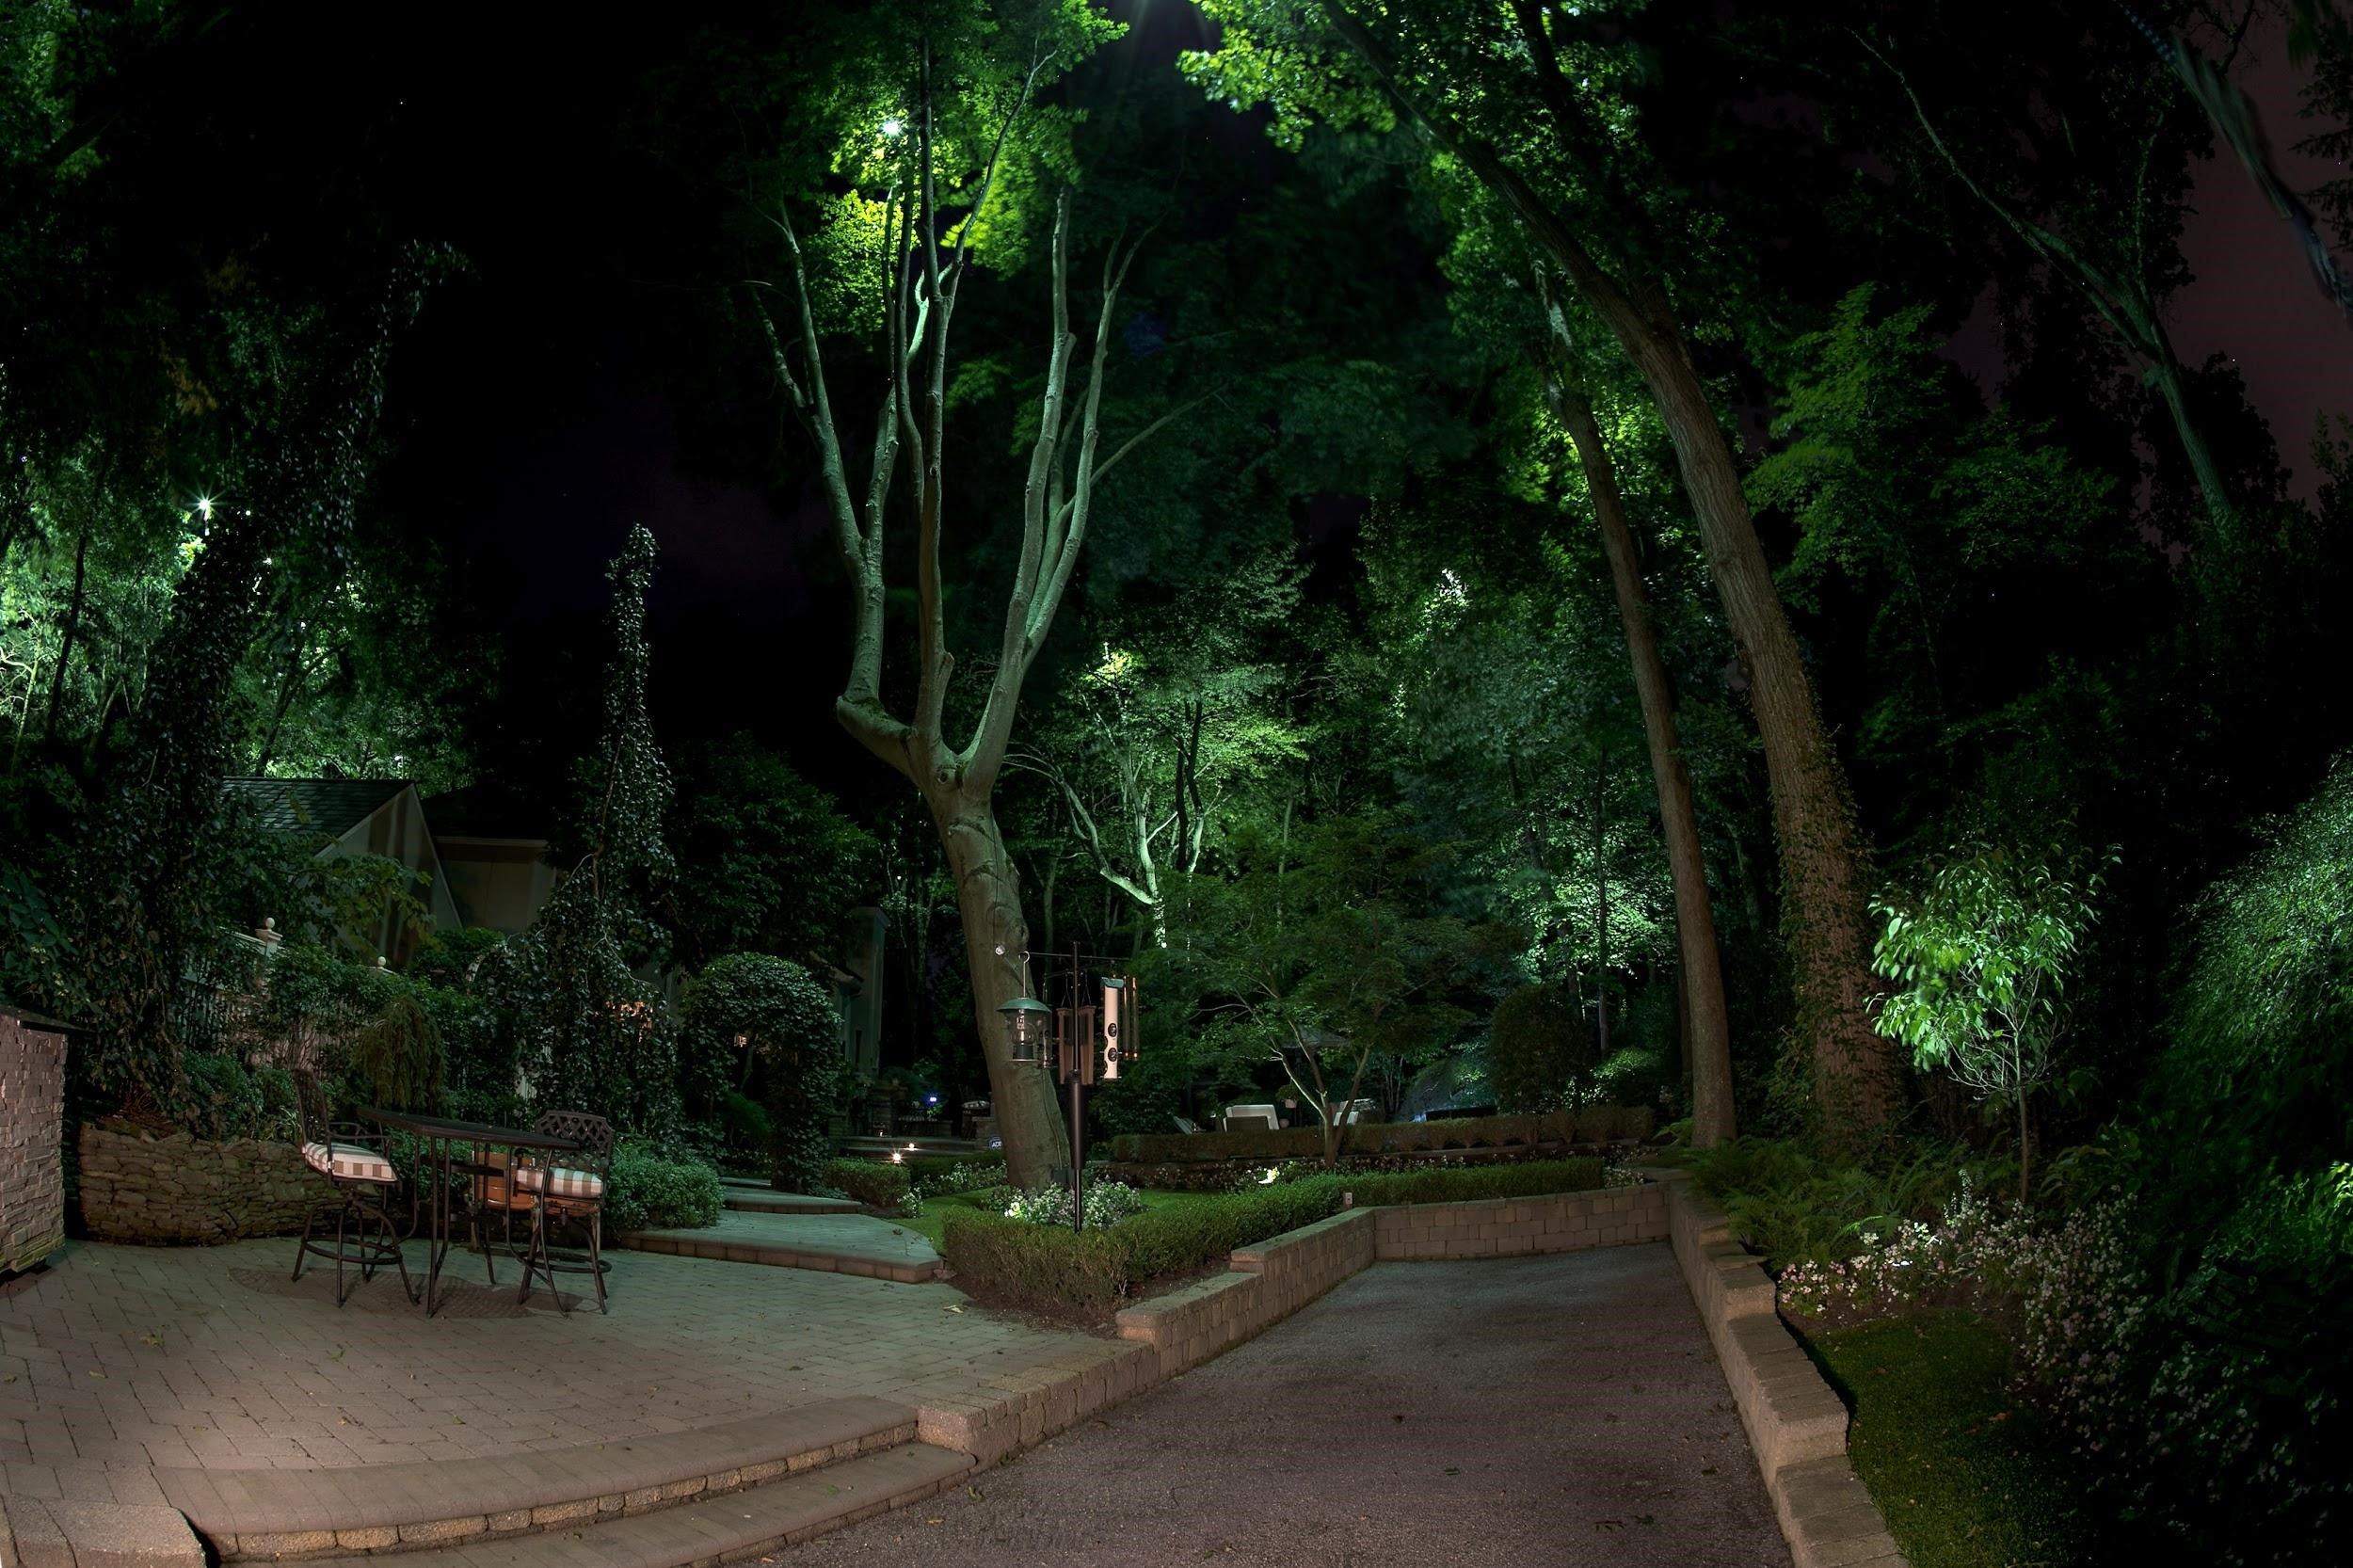 Outdoor lighting supply in New Jersey, NJ